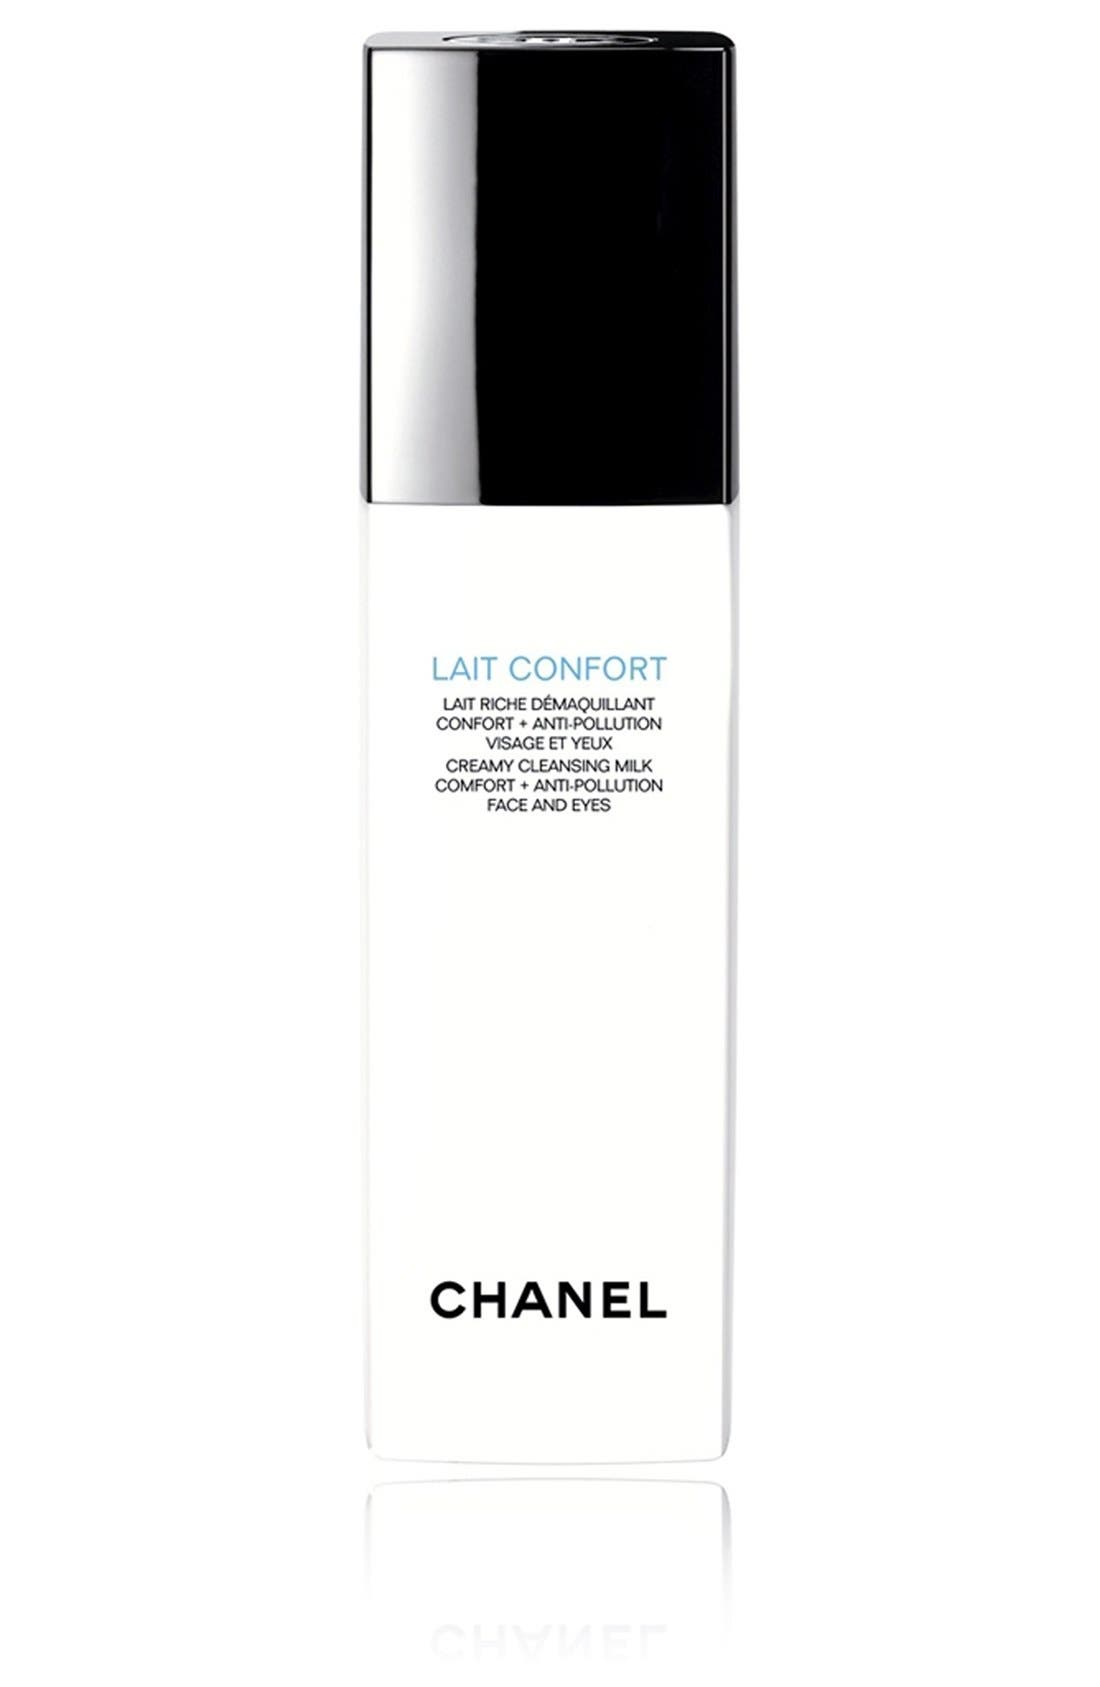 CHANEL,                             LAIT CONFORT<br />Creamy Cleansing Milk Comfort + Anti-Pollution Face & Eyes,                             Main thumbnail 1, color,                             000